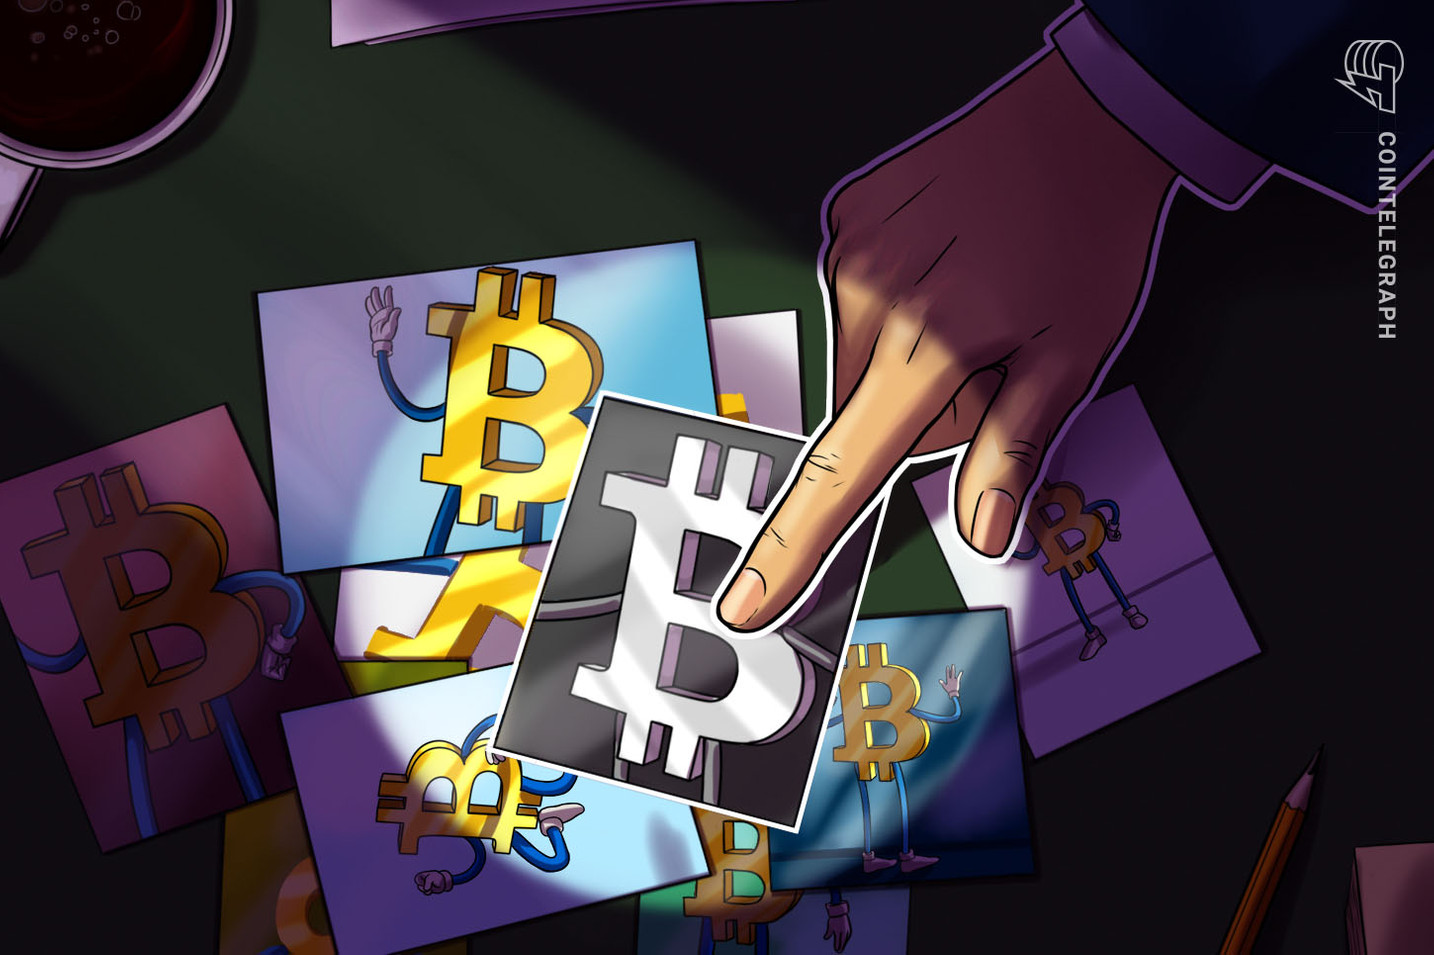 PlusToken Scam Moves $123M in Bitcoin Just as BTC Price Regains $10K